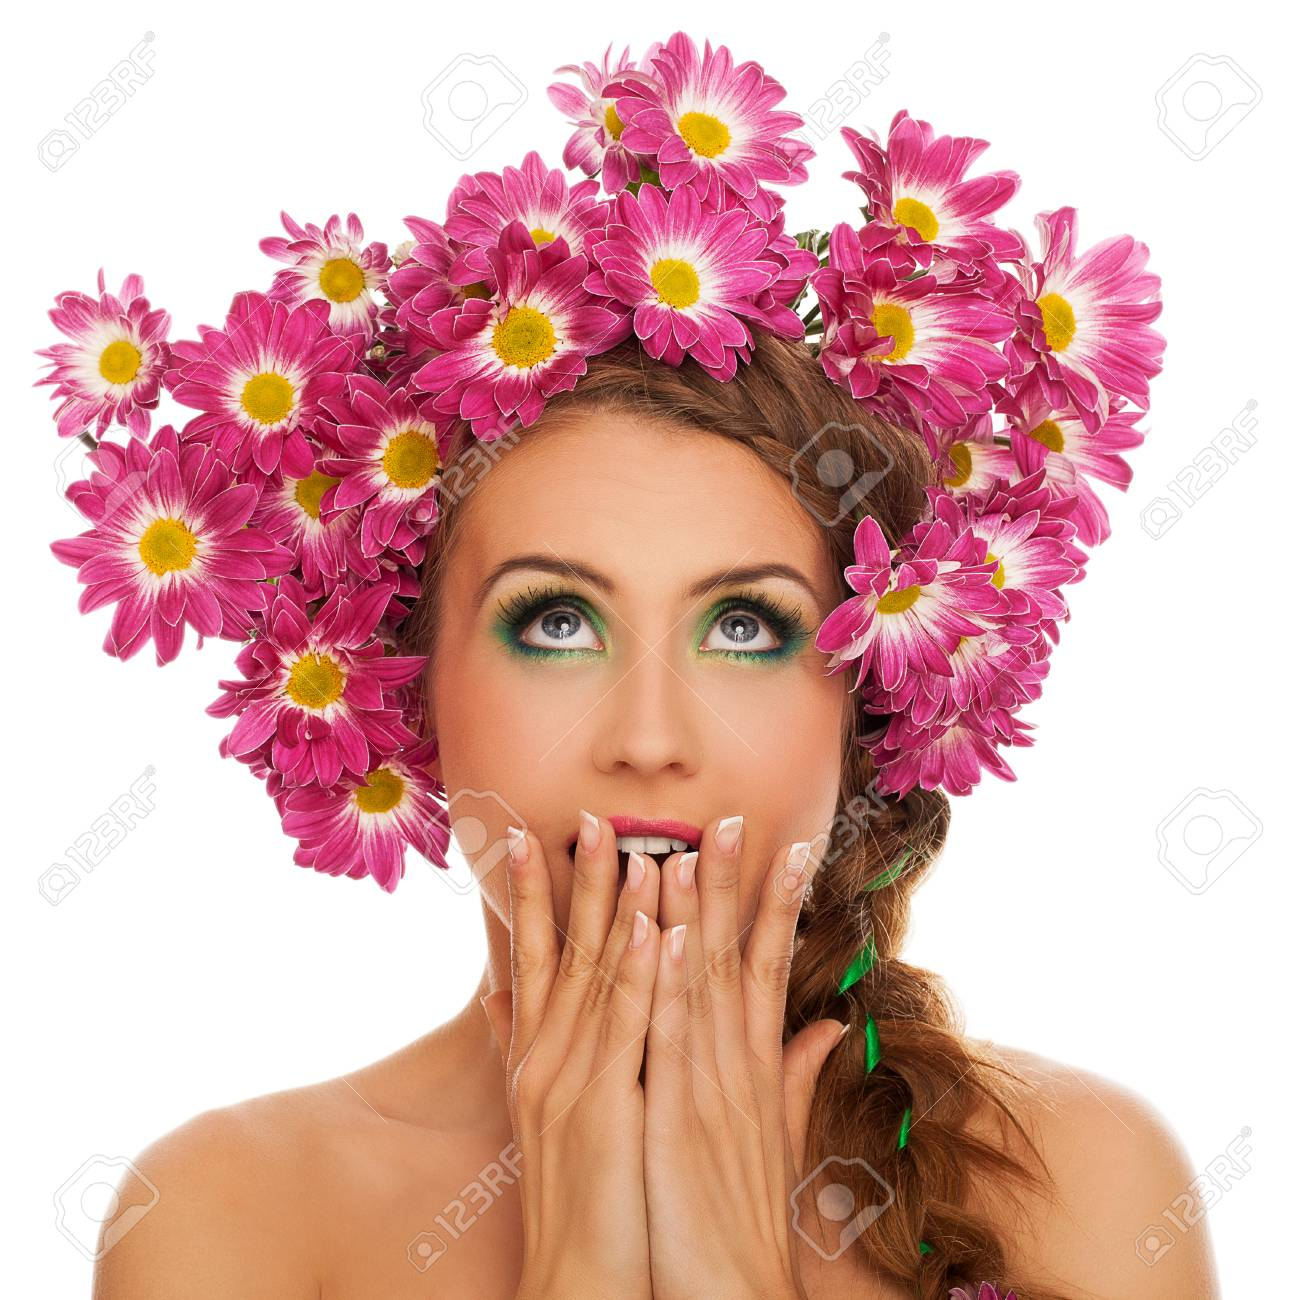 Beautiful Young Caucasian Woman With Flowers In Hair Isolated